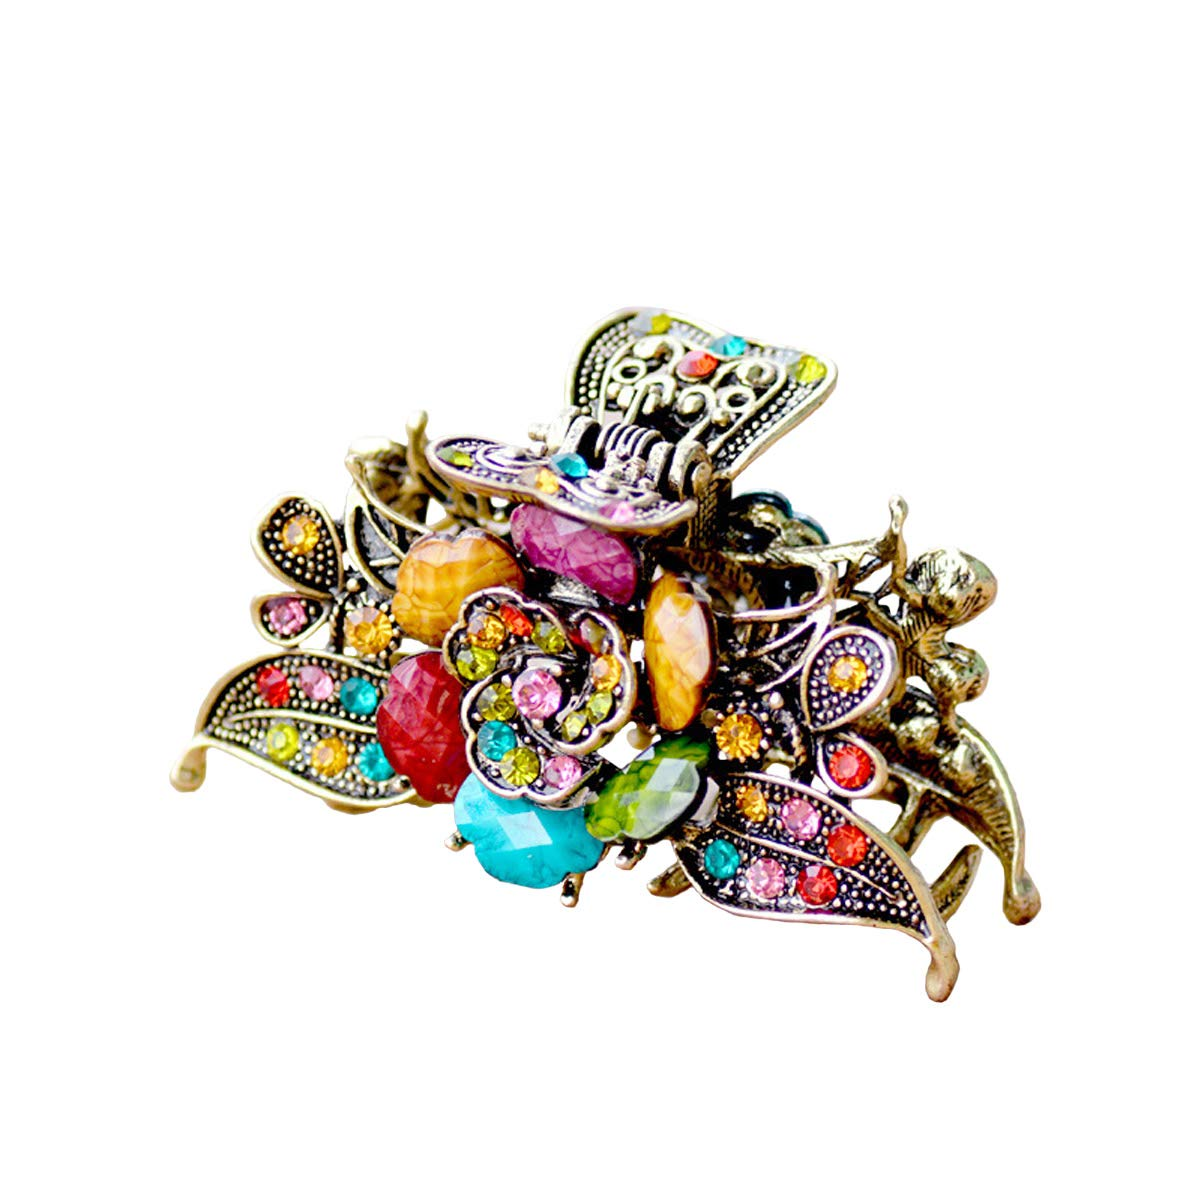 Numblartd Vintage Chic Rose Flower Crystal Rhinestone Imitation Turquoise Fancy Hair Claw Jaw Clips Pins - Women Girls Retro Alloy Hair Updo Grip Hair Catch Hair Accessories for Medium to Long Hair